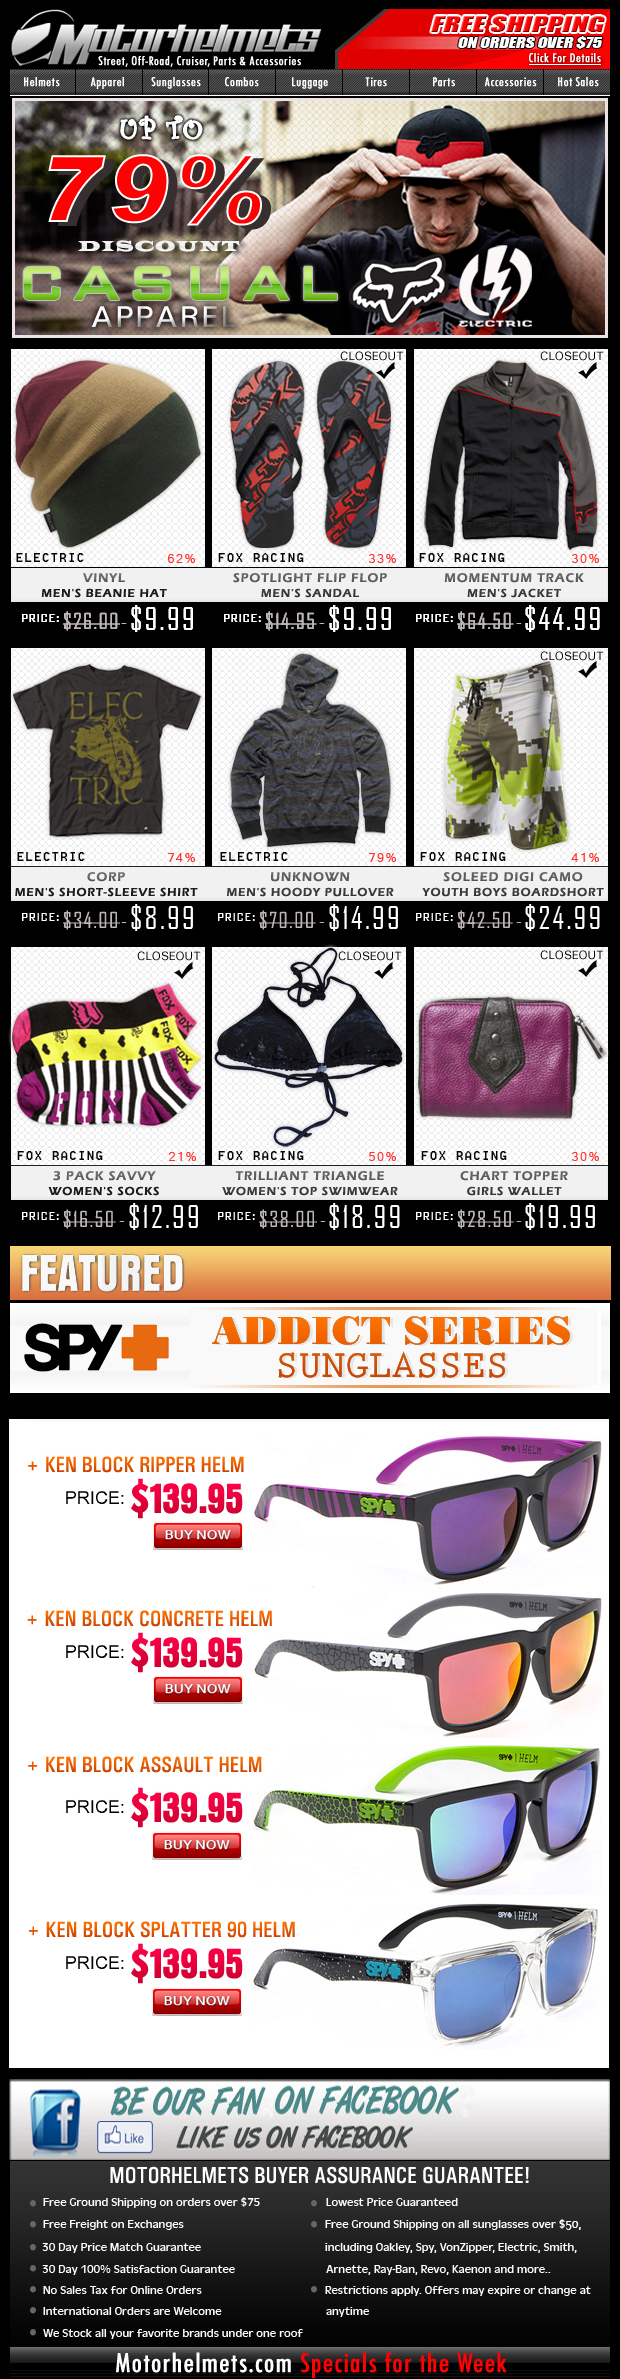 Electric & Fox Closeouts...save up to 79% off!